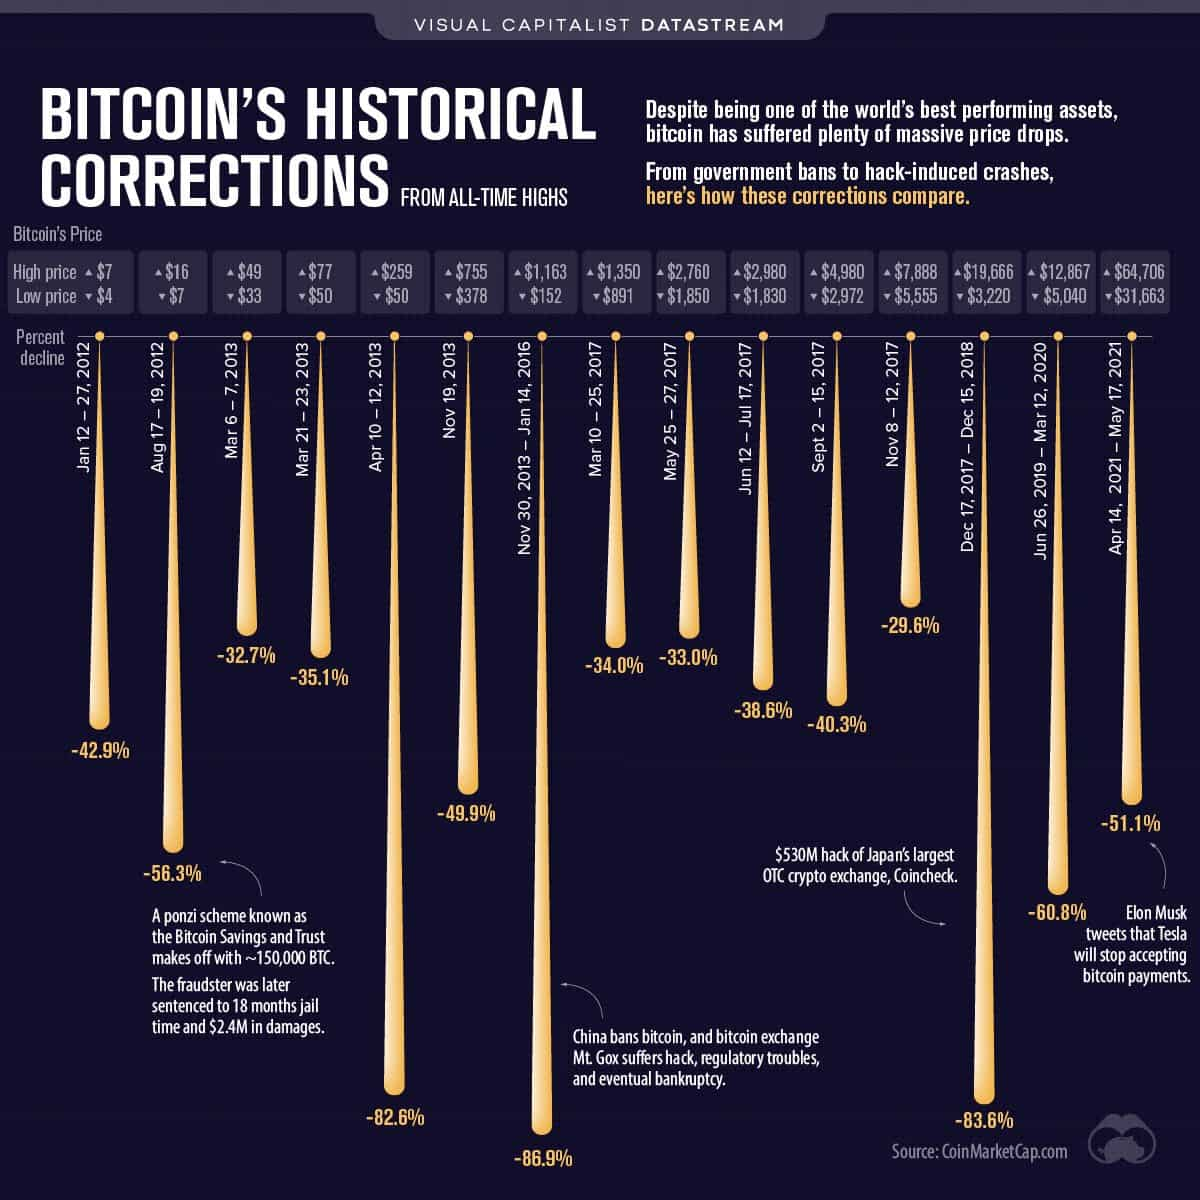 Bitcoin's Historical Corrections. Source: Twitter